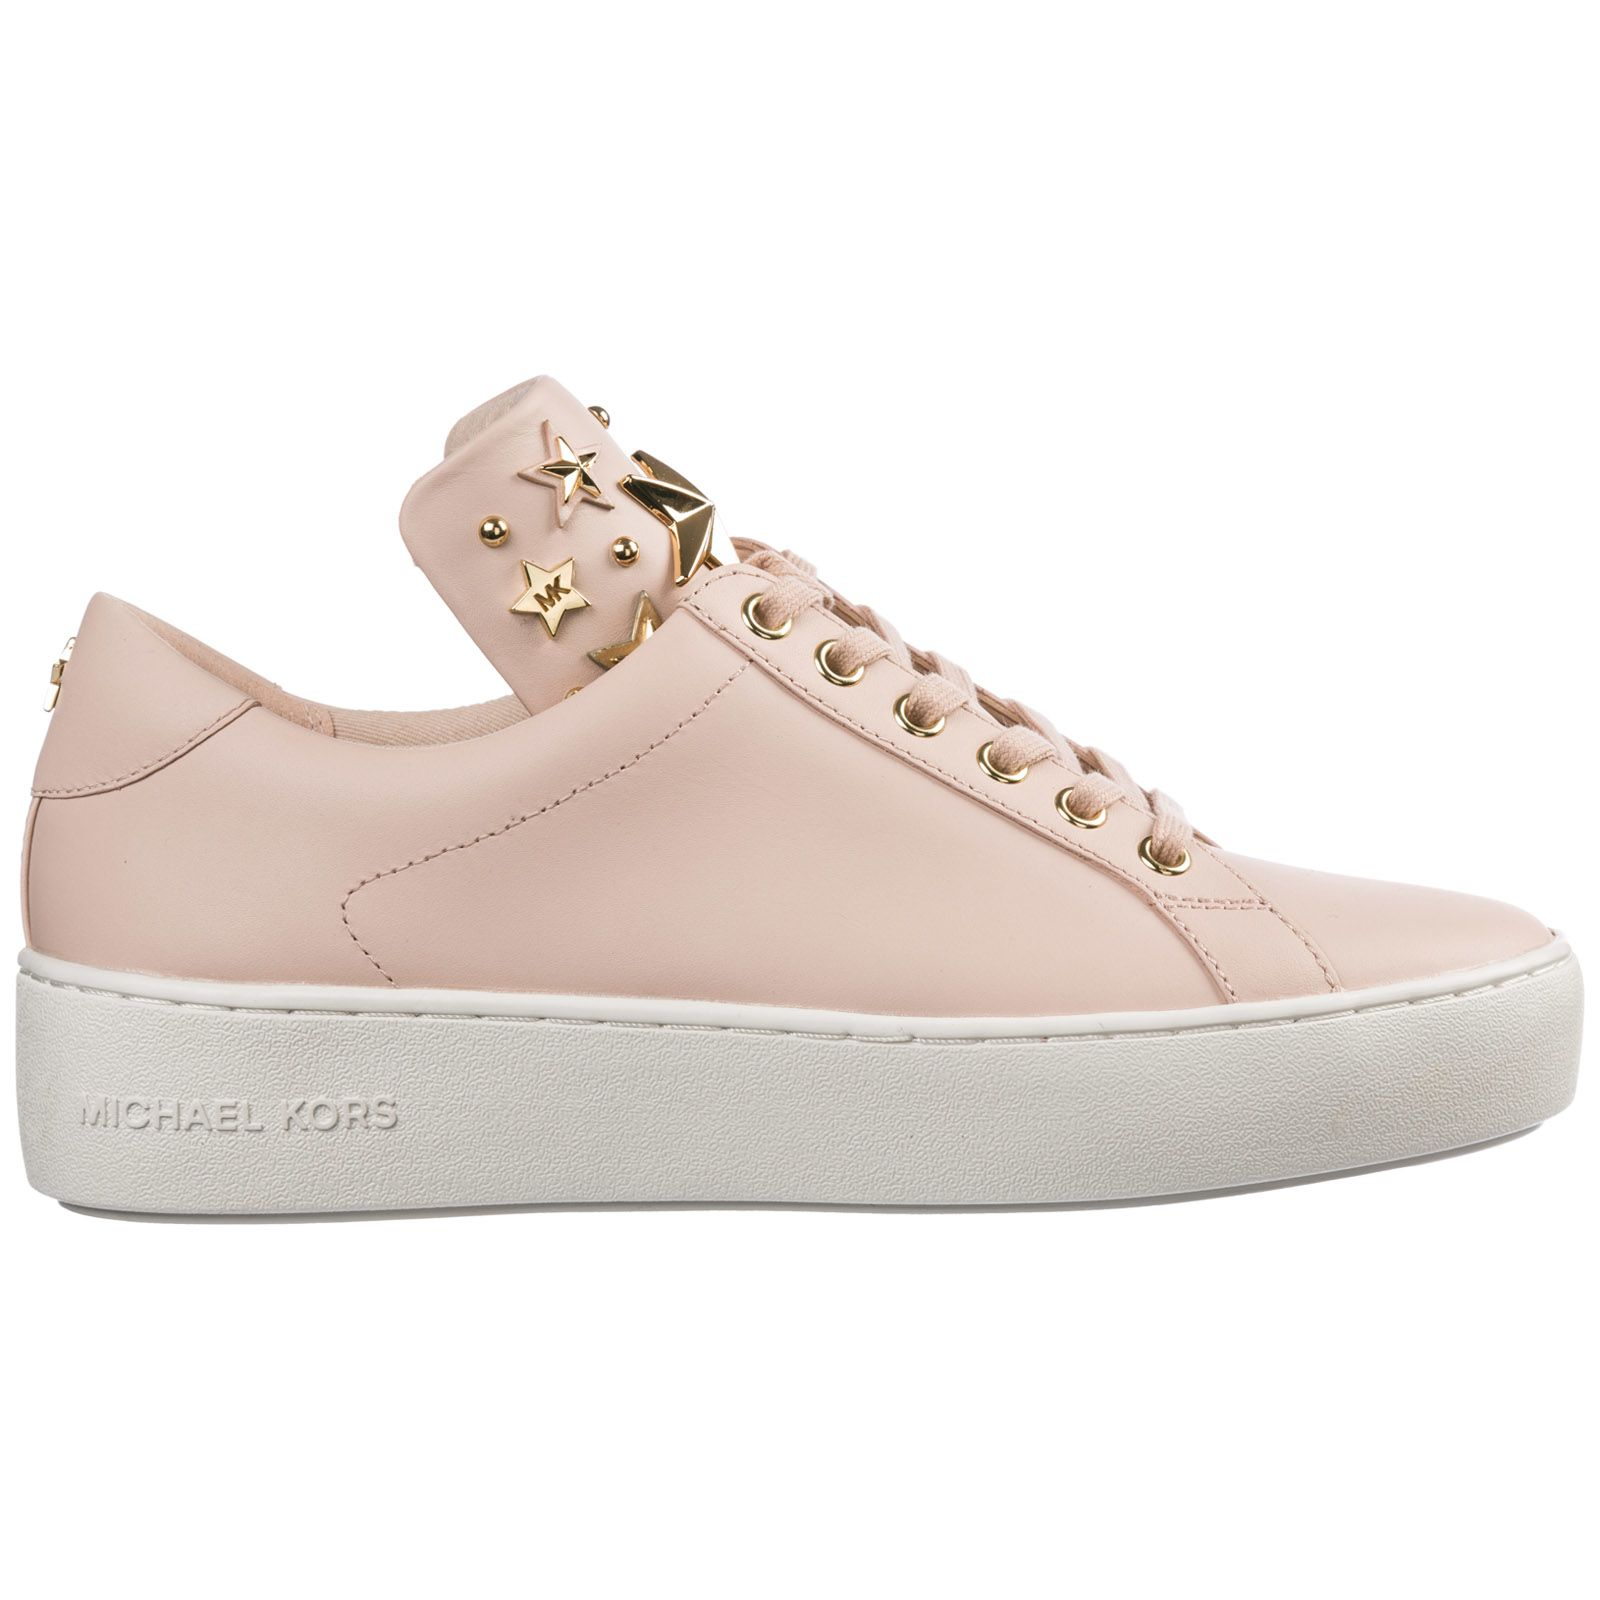 7418cb8ad12b Michael Kors Michael Kors Shoes Leather Trainers Sneakers - Soft ...